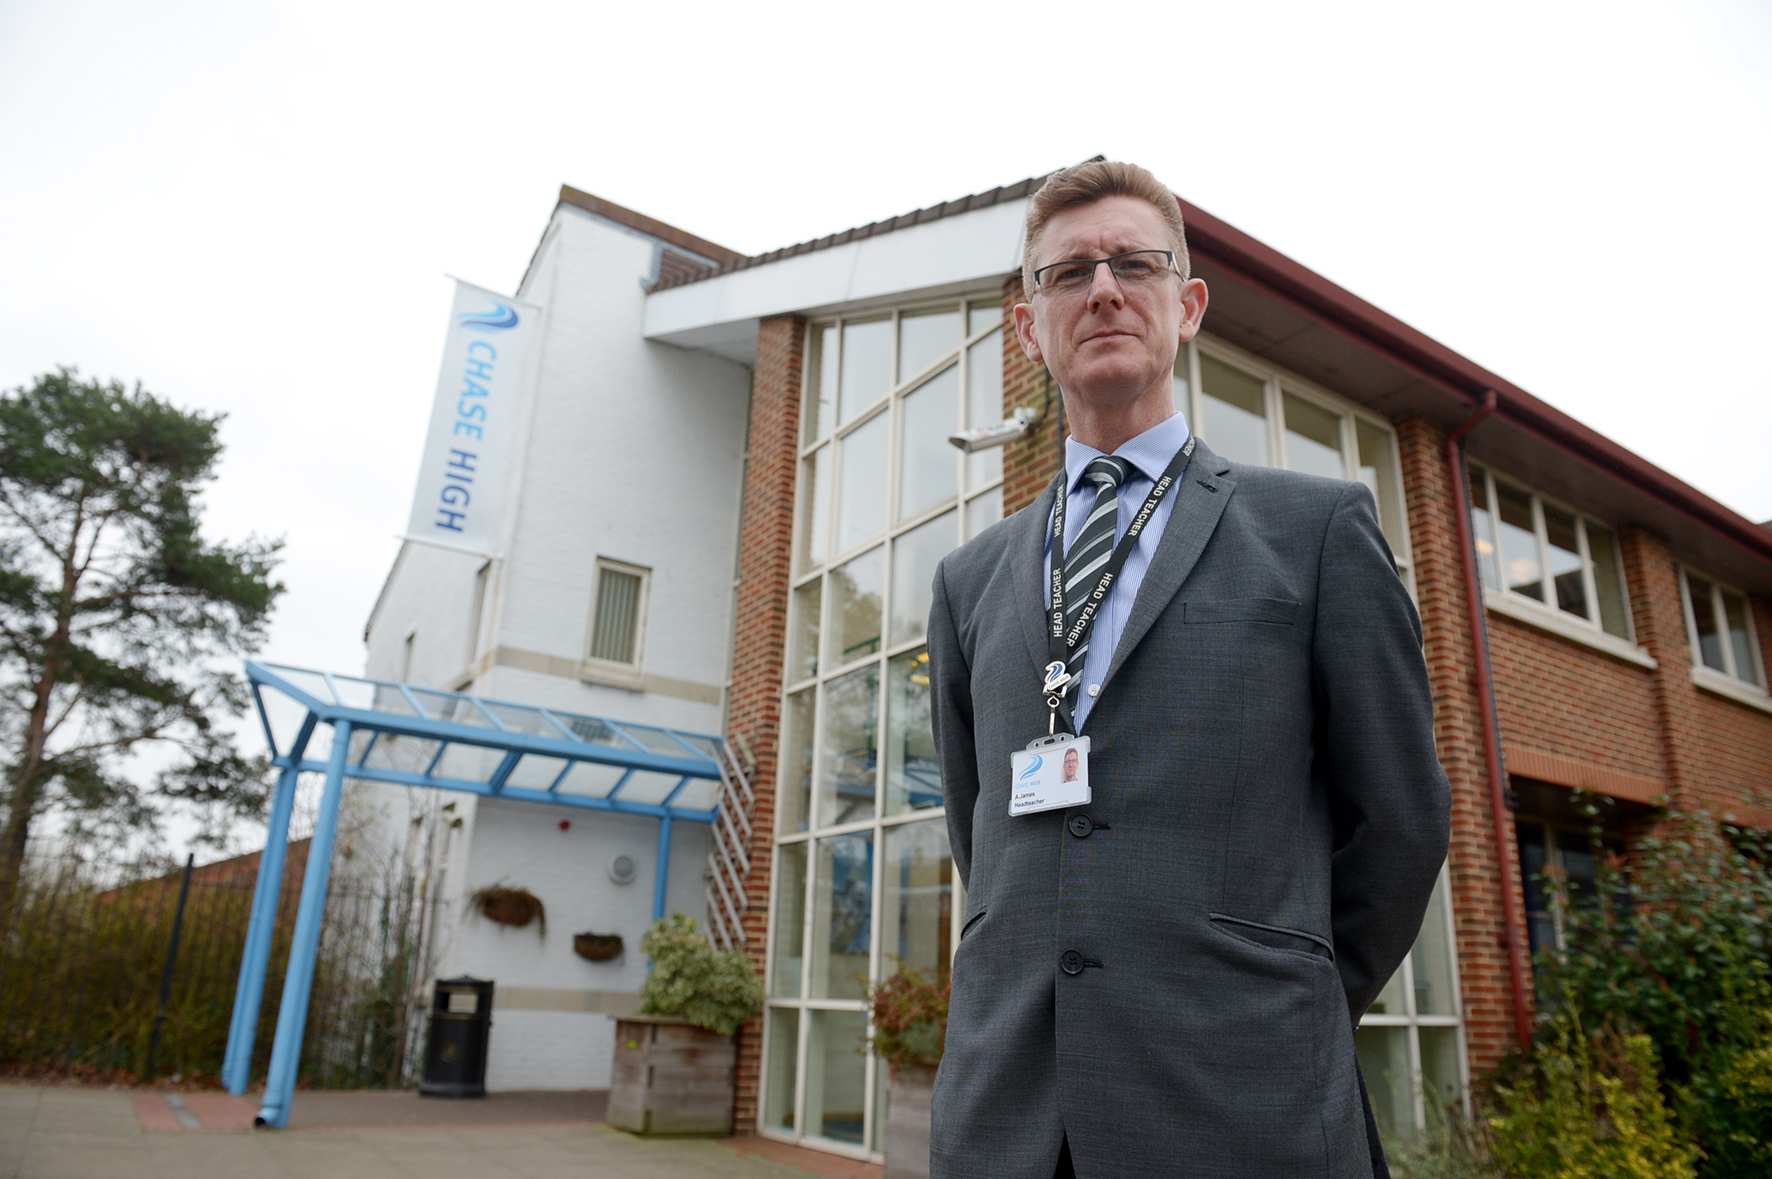 Headteacher Andrew James - Chase High School, Prittlewell Chase, Southend-on-Sea, Westcliff-on-Sea.